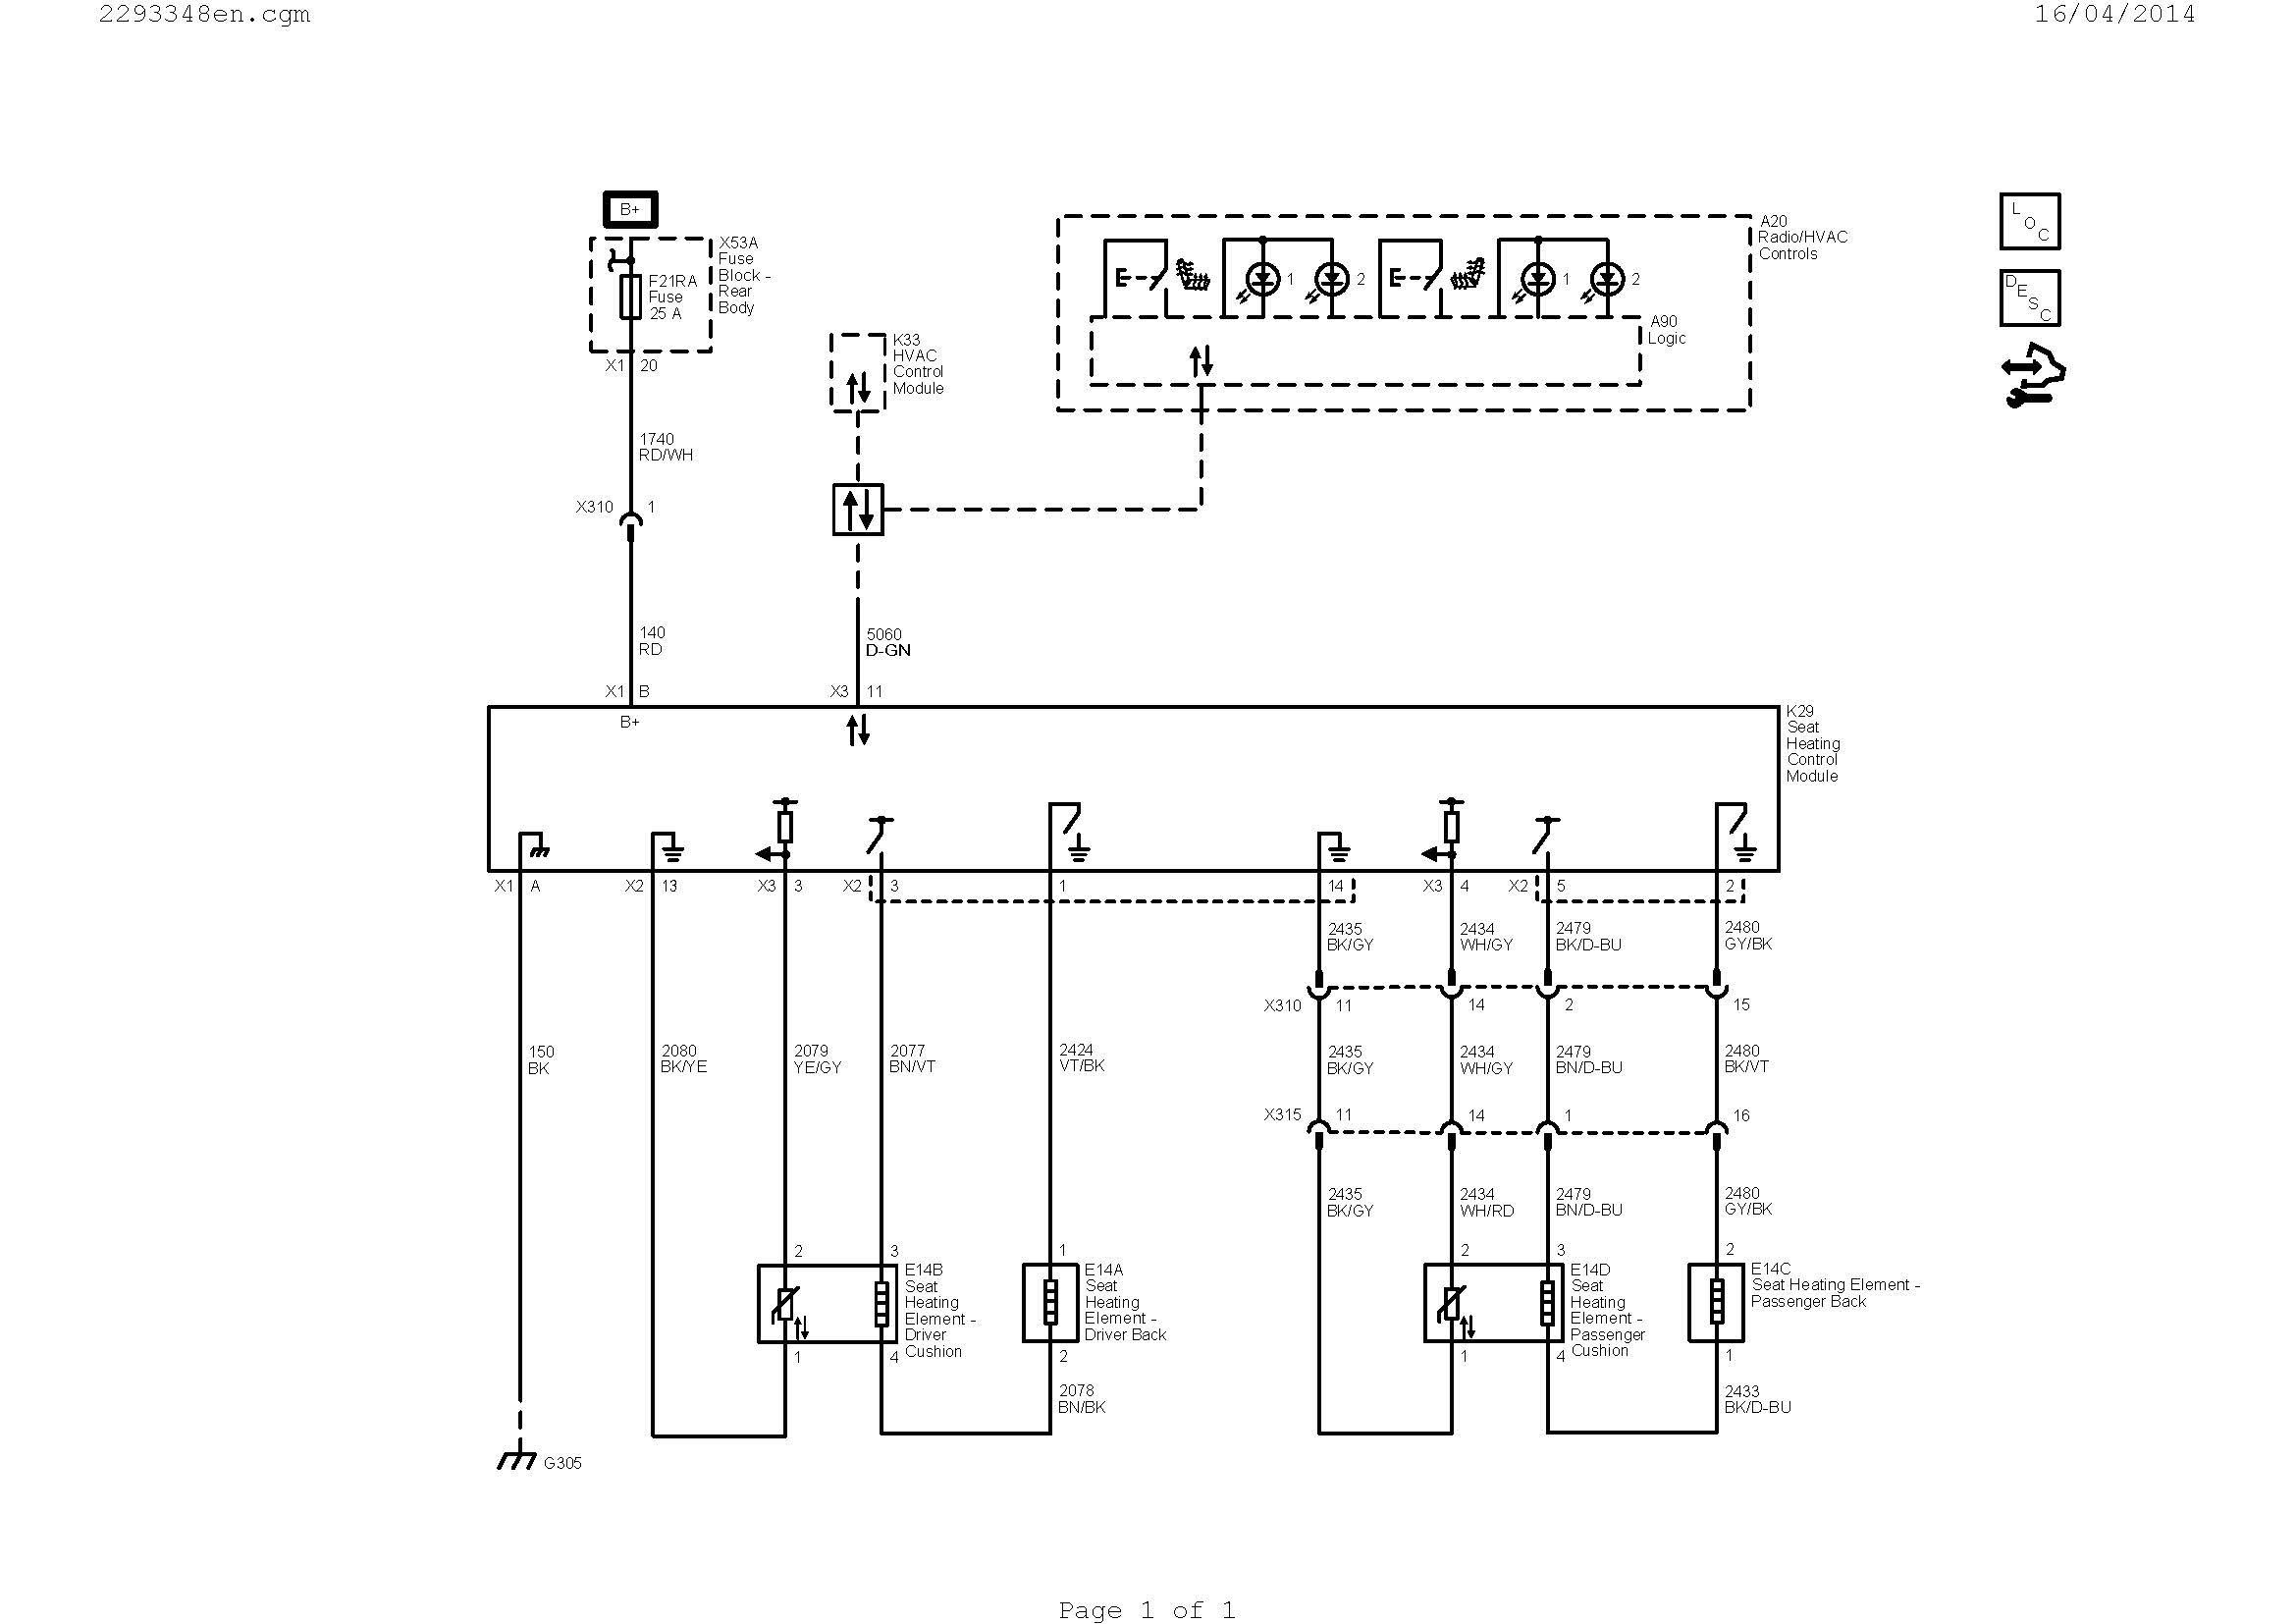 Moving Engine Diagram Kohler Wiring Diagram Sample